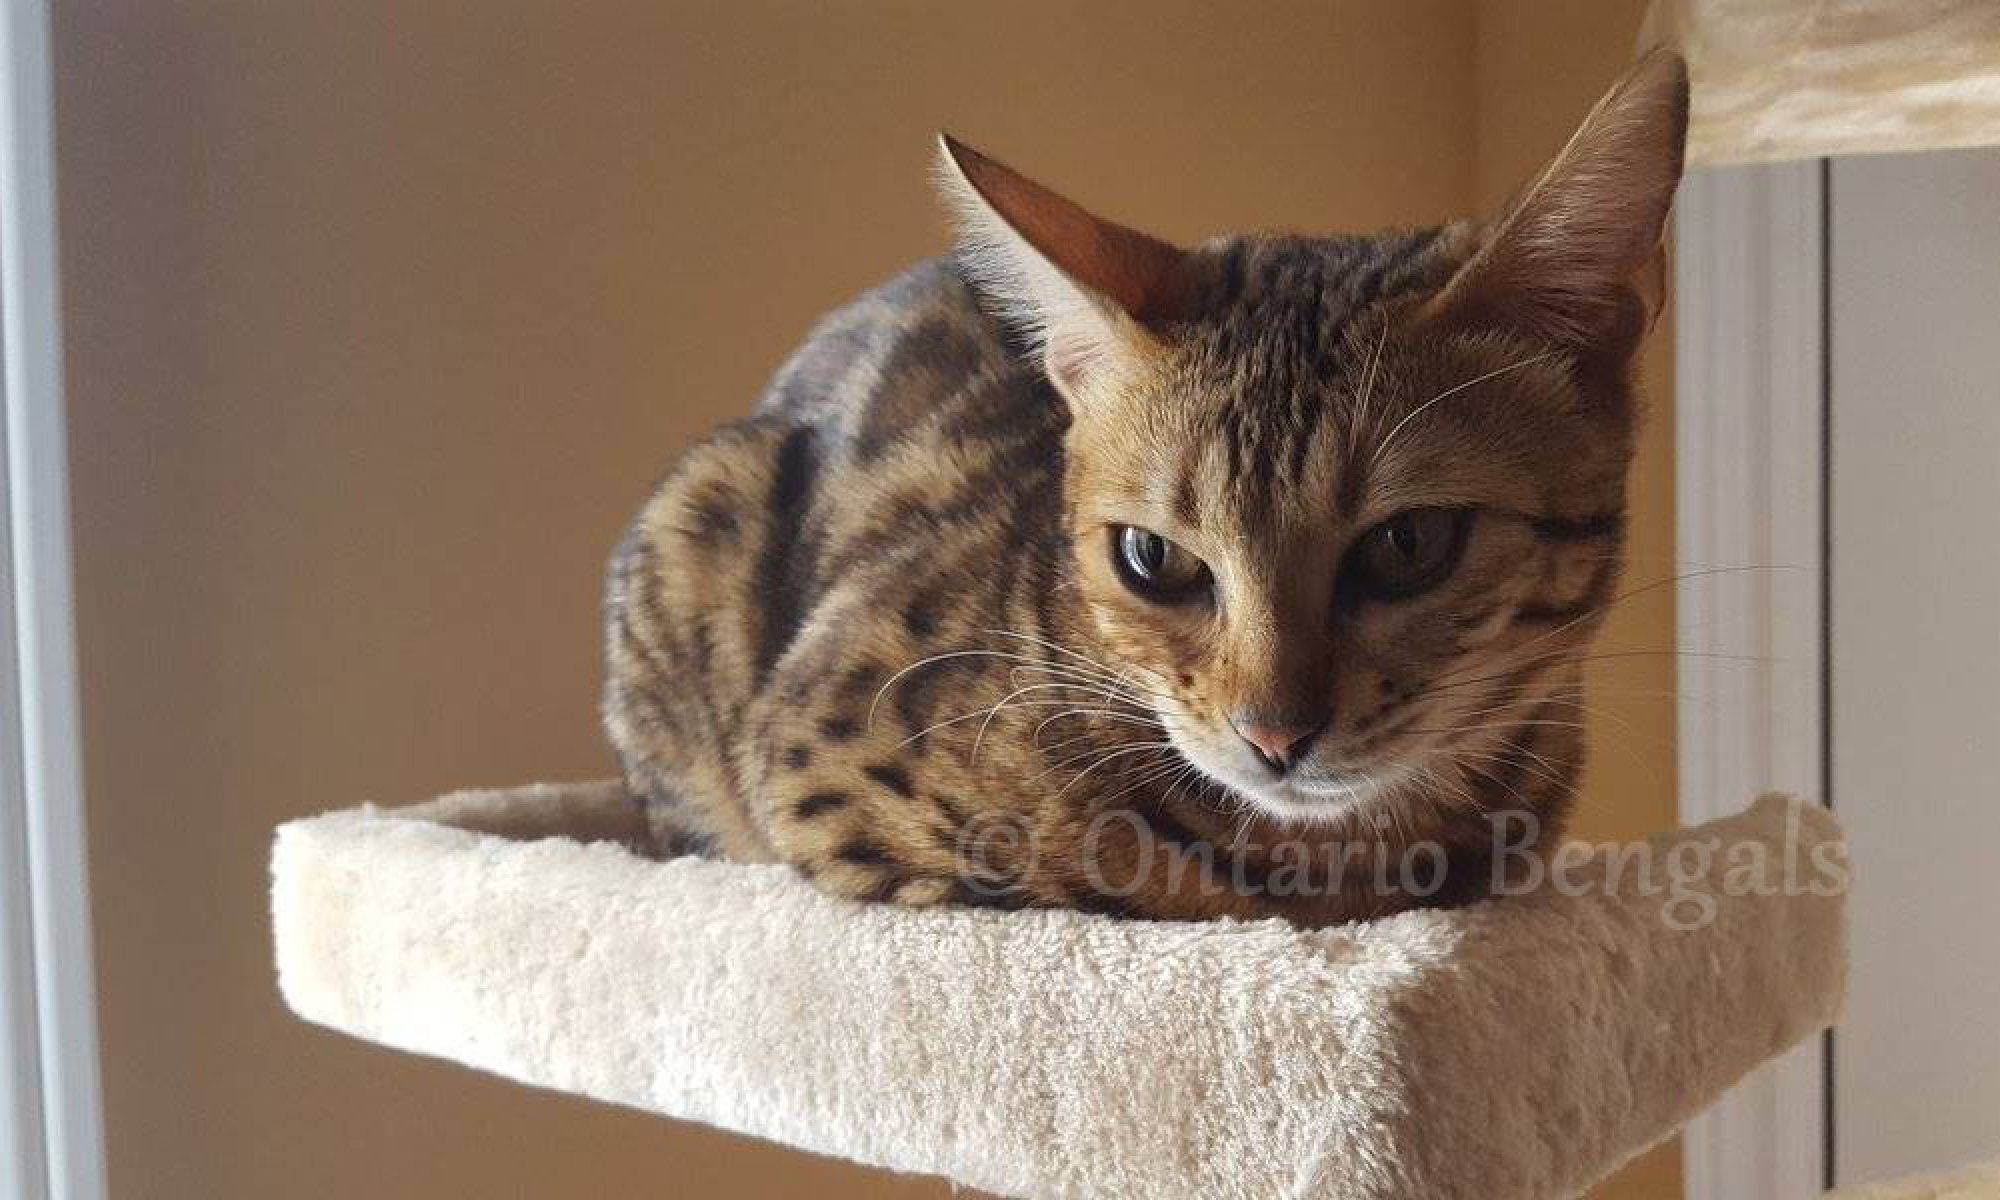 Bengals Kittens for Sale | Ontario Bengals Cattery